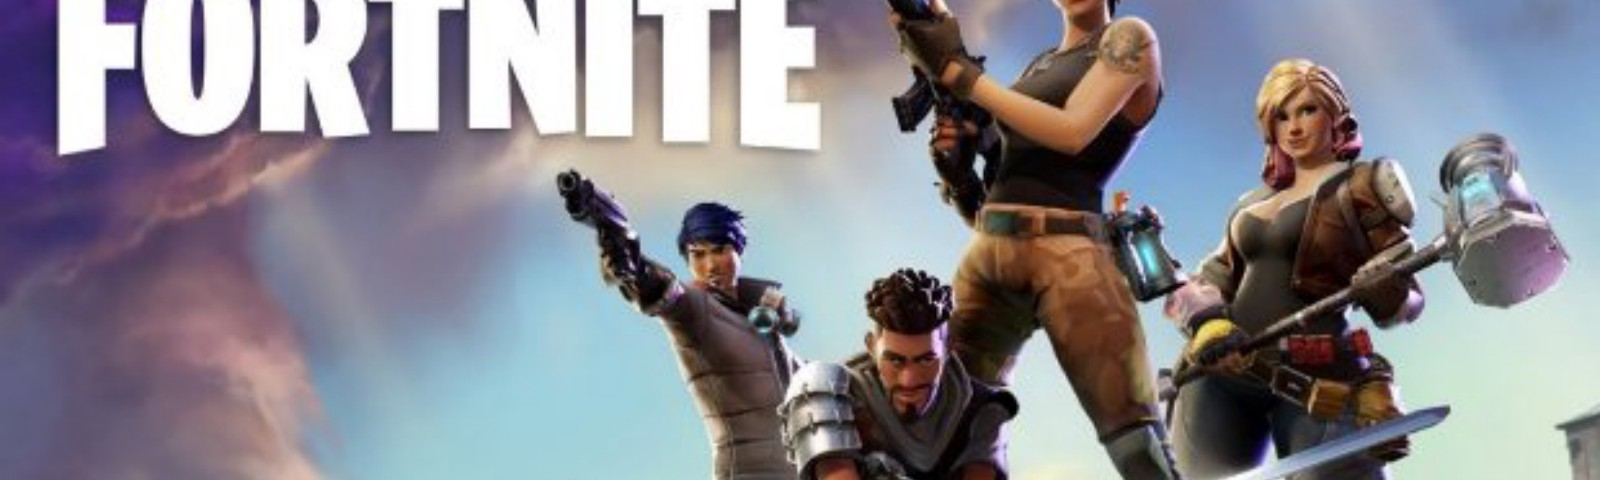 Fortnite Twitter account was hacked, Epic Games will sue the hacker